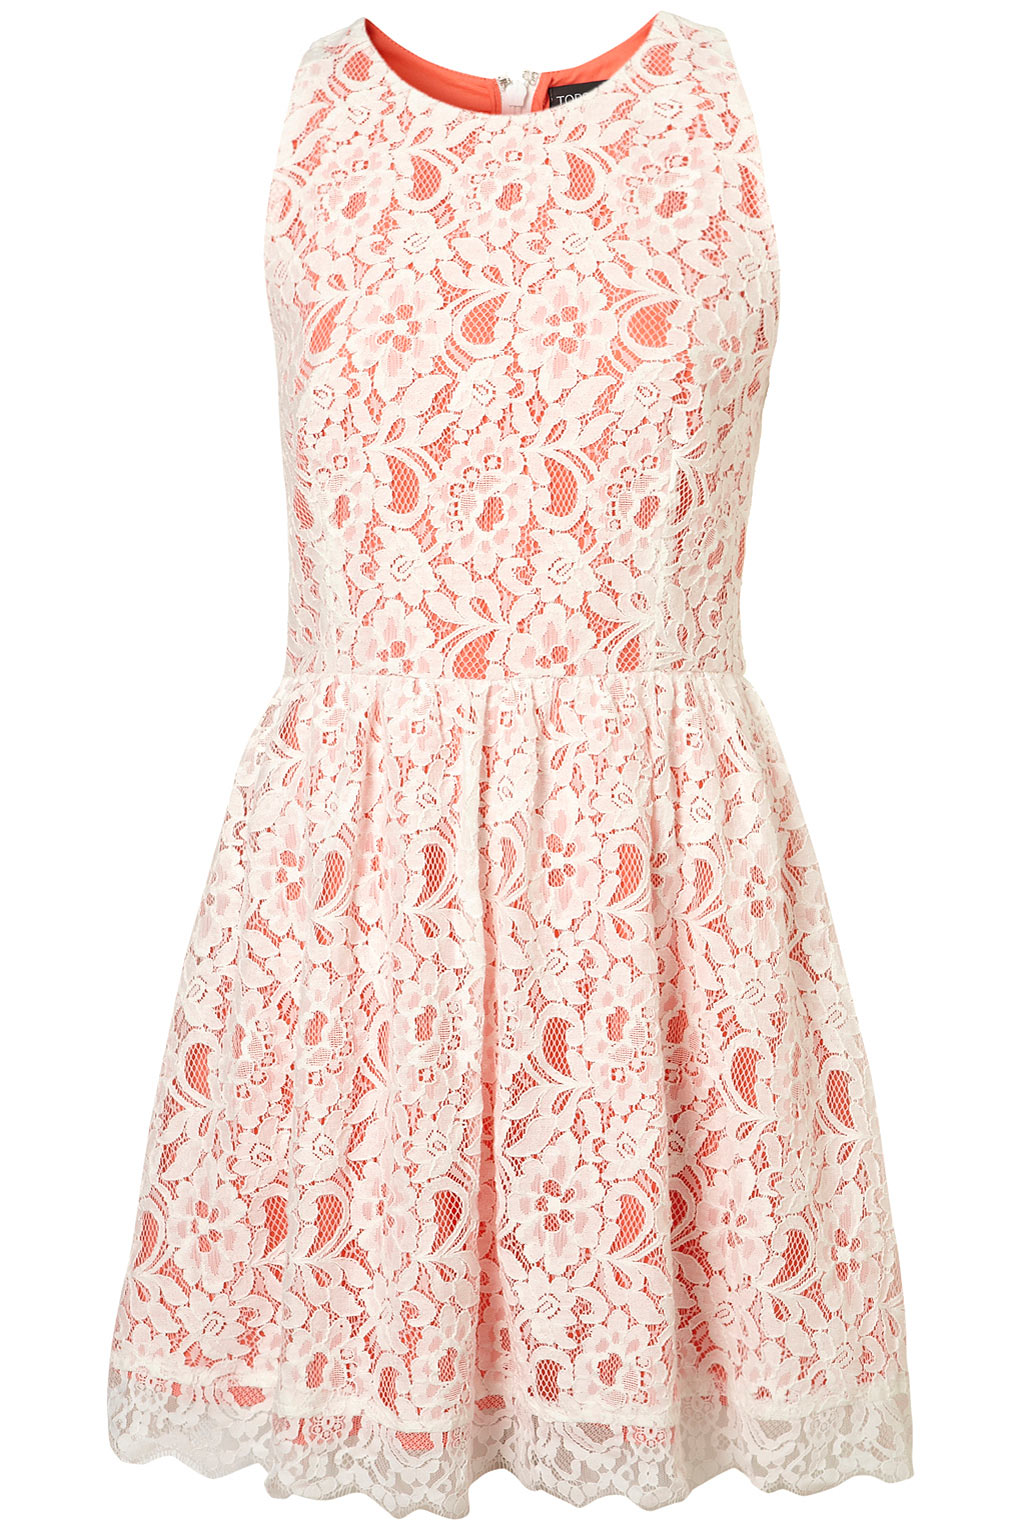 Lyst Topshop Lace Racer Cute Skirted Dress In Pink